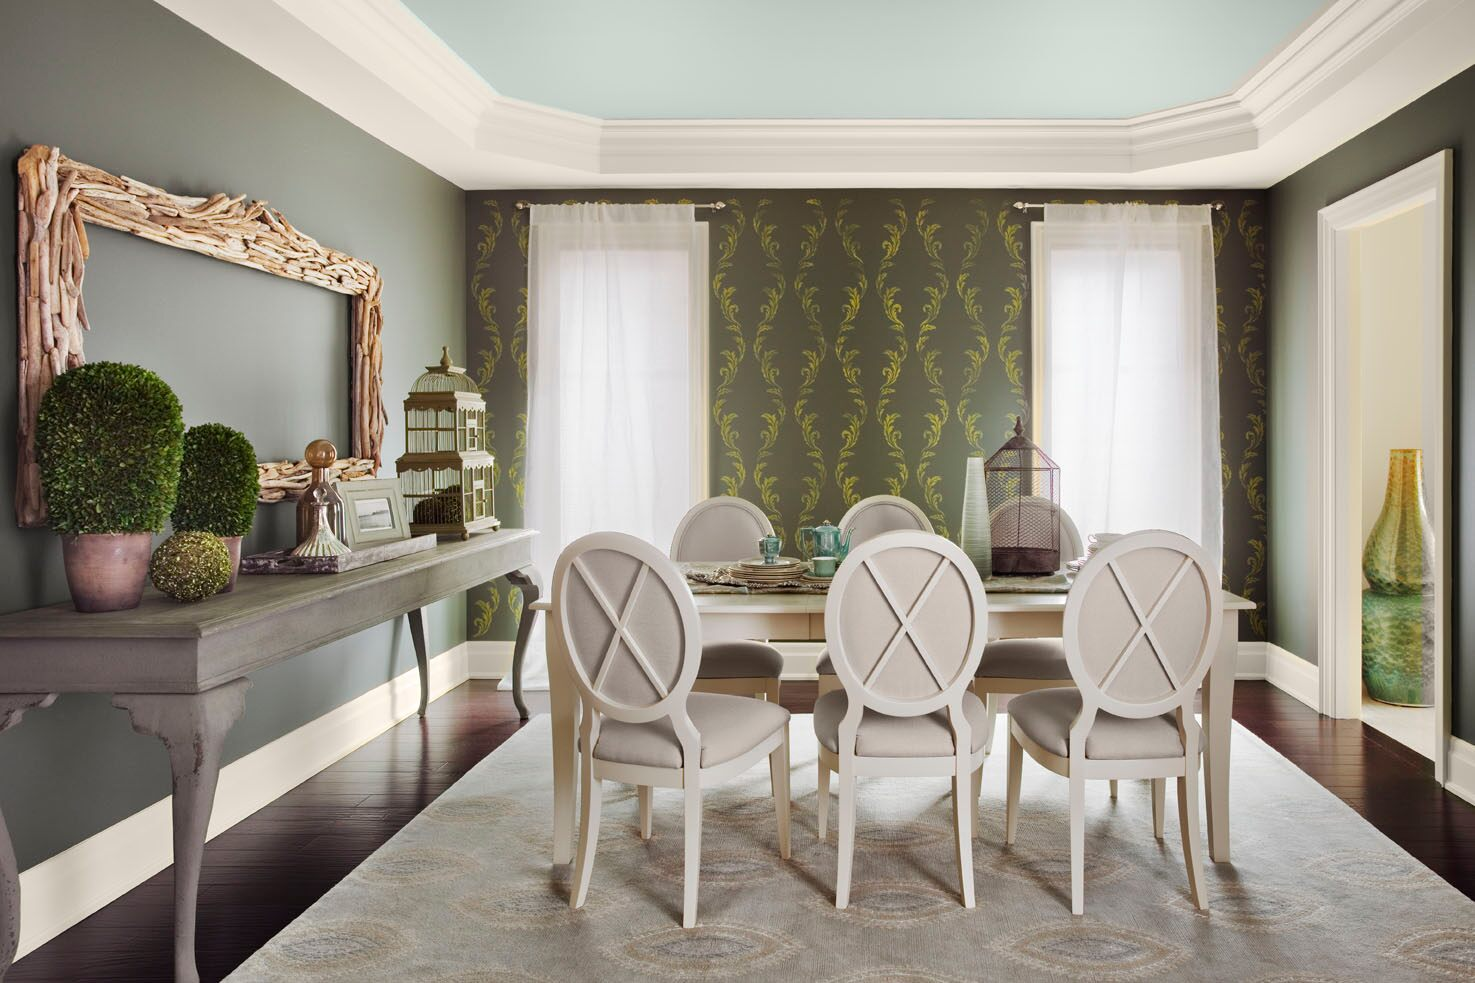 Outstanding Benjamin Moore Dining Room Colors 1475 X 983 227 KB Jpeg